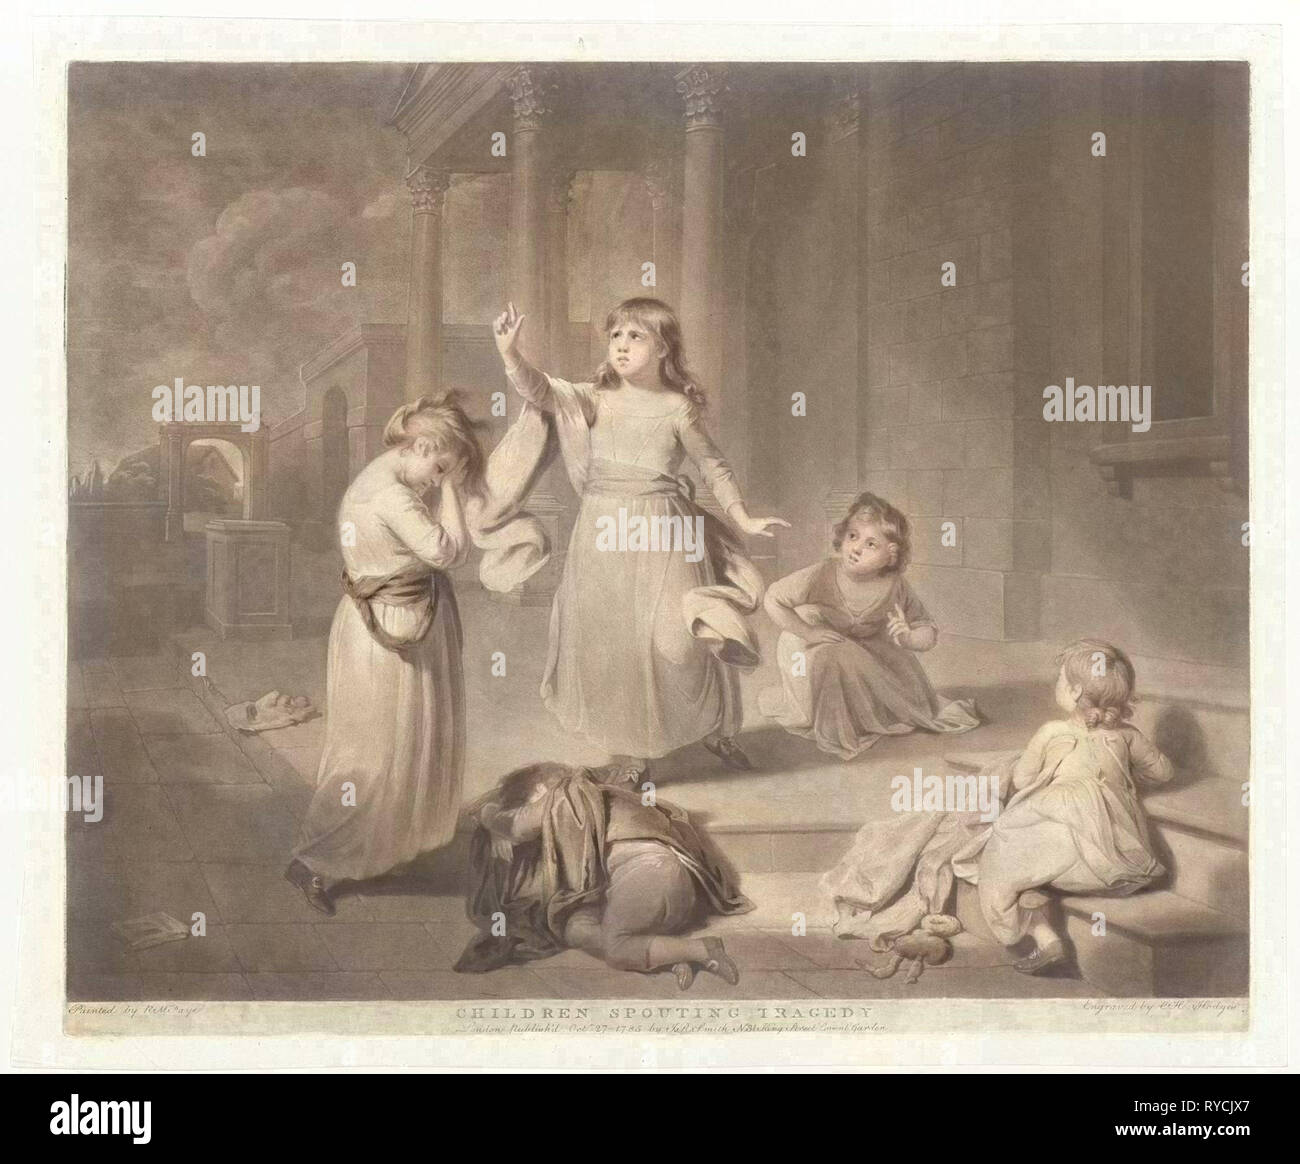 Children play a tragedy, Charles Howard Hodges, John Raphael Smith, 1785 - Stock Image